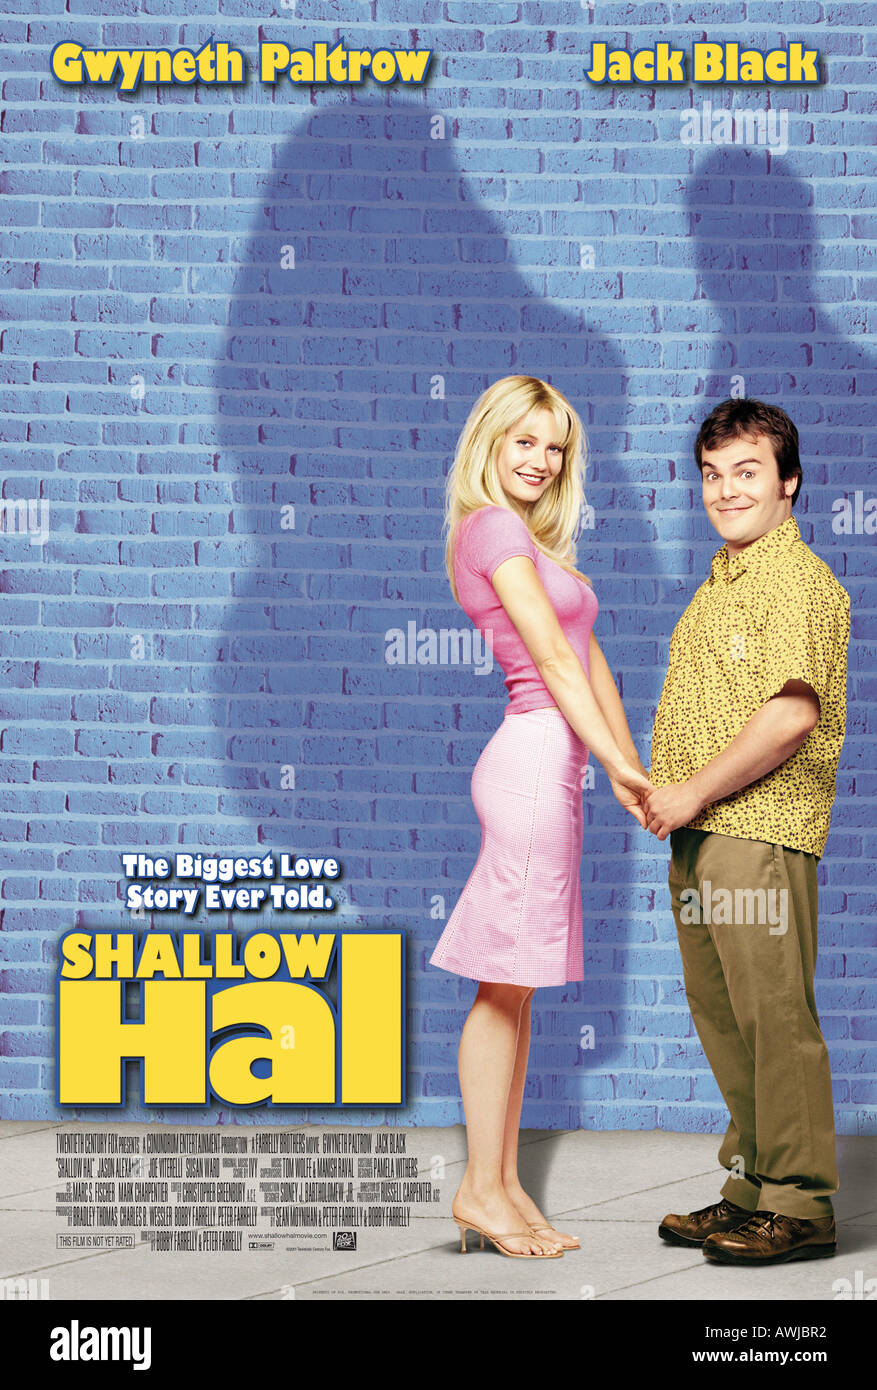 SHALLOW HAL  poster for 2001 Twentieth Century Fox film with Gwyneth Paltrow and Jack Black - Stock Image